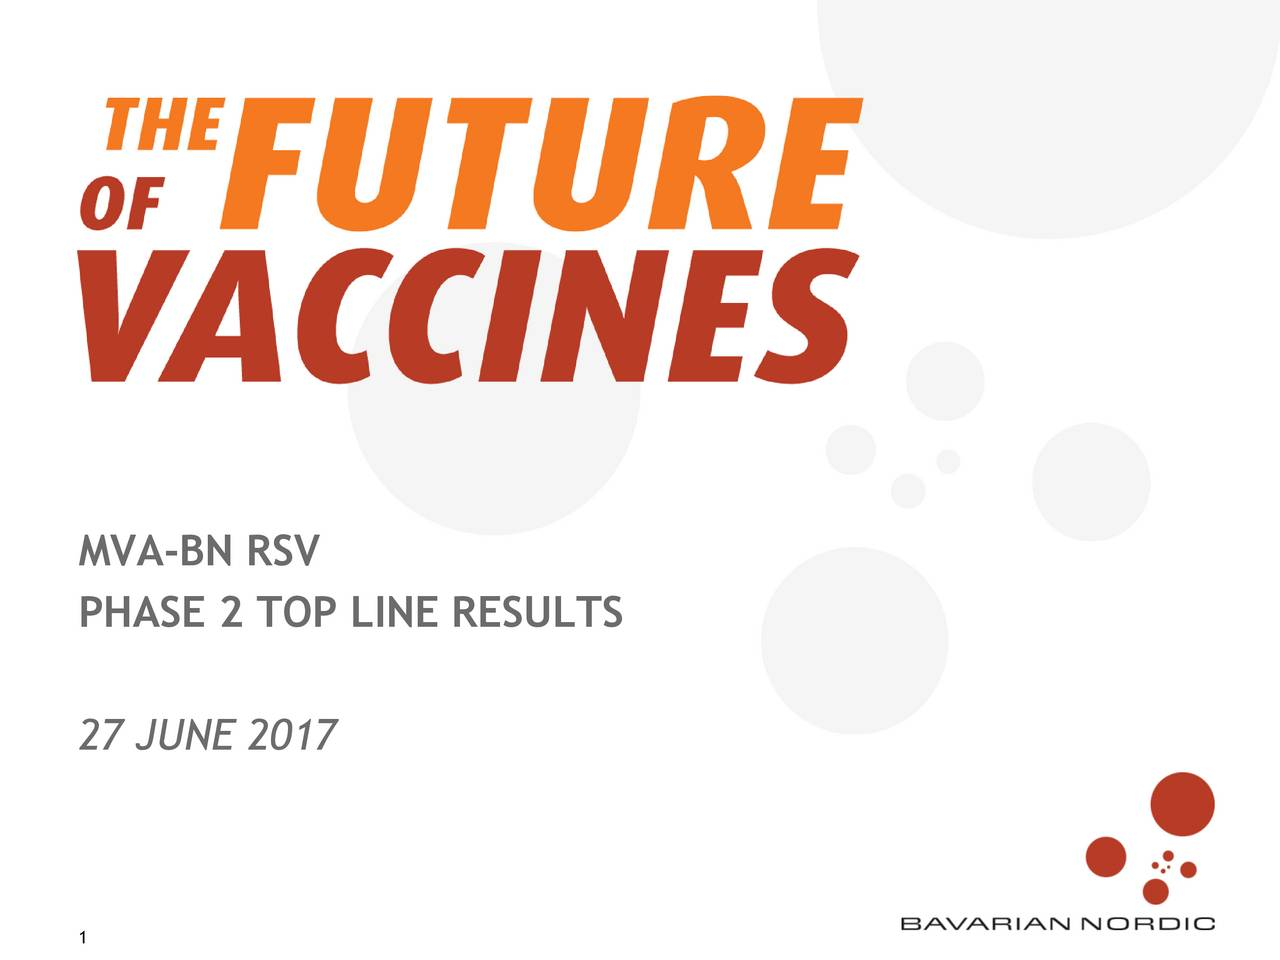 PHASE 2 TOP LINE RESULTS 27 JUNE 2017